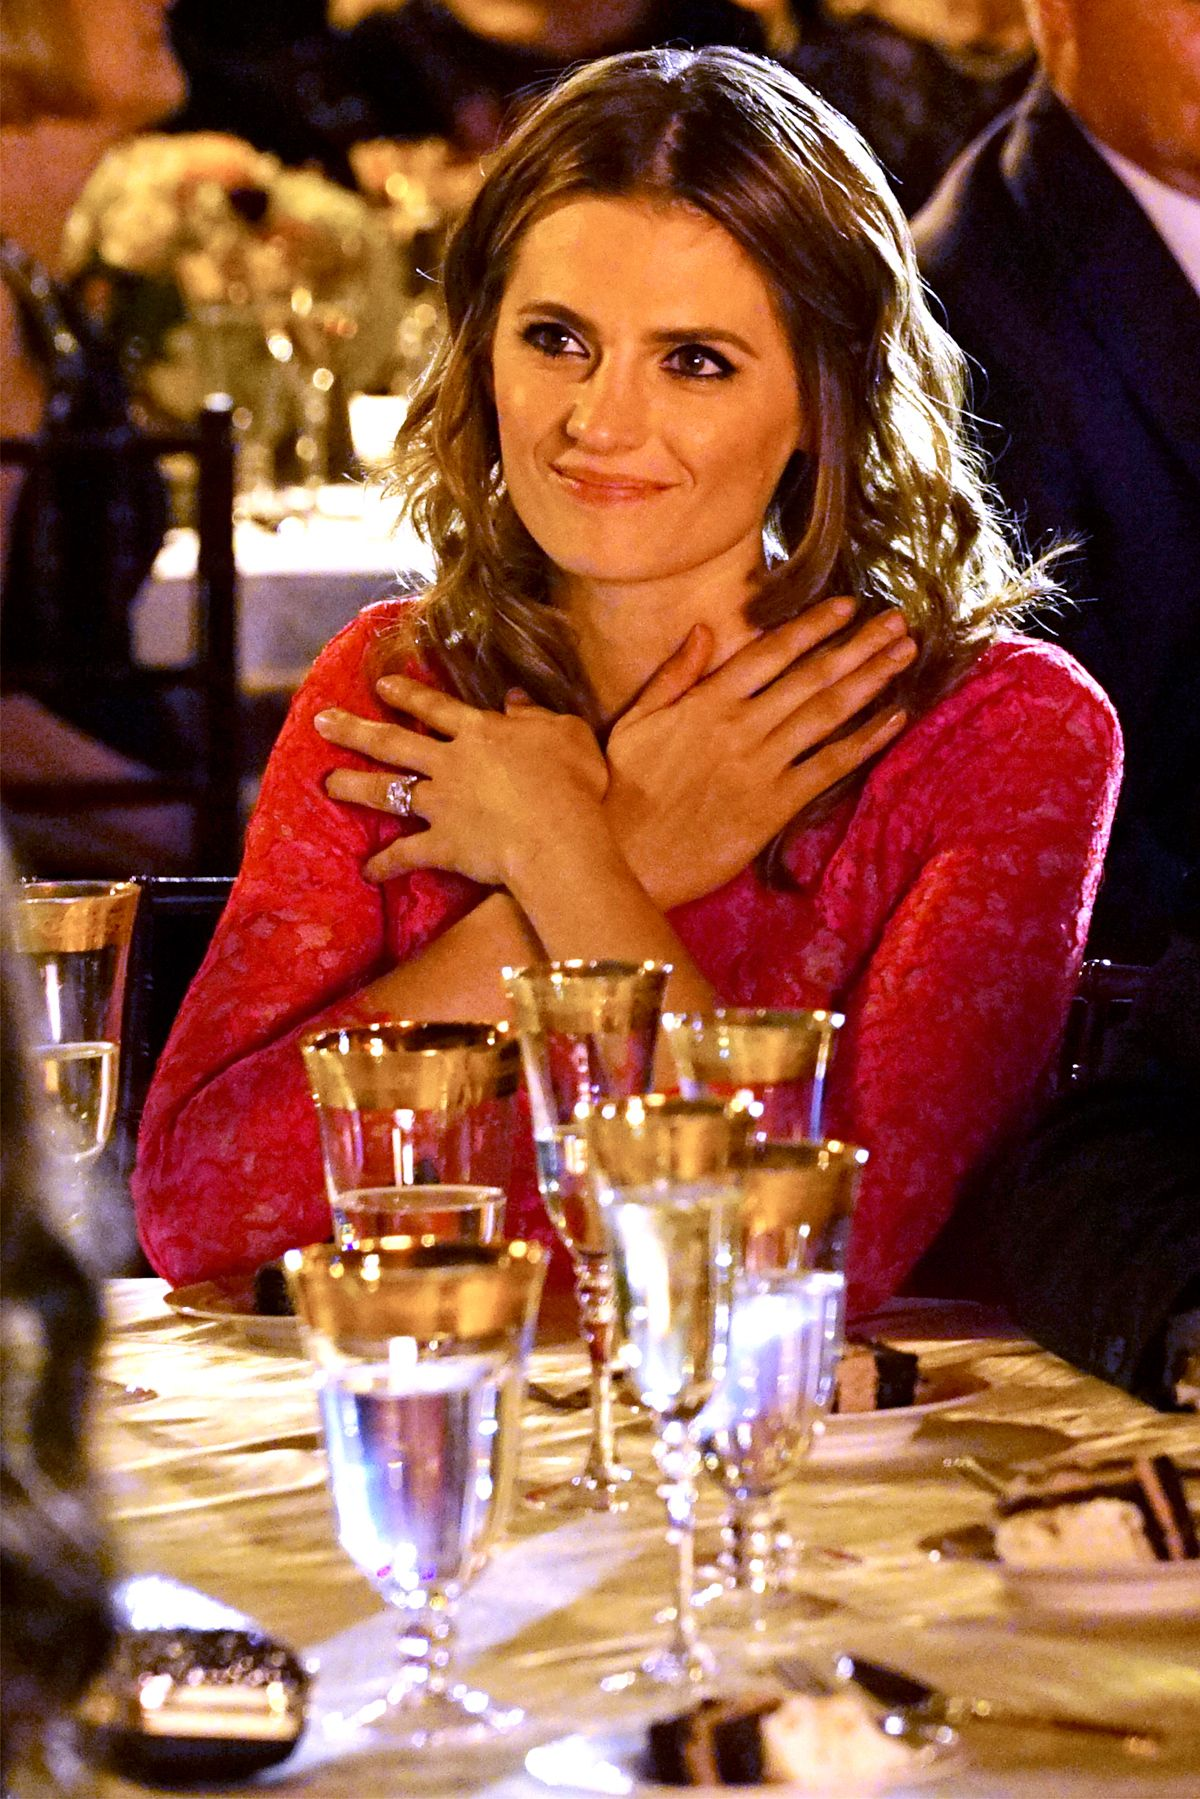 Stana Katic Officially Returning For Castle Season 8 Filme Serien Schauspieler Schauspieler Innen